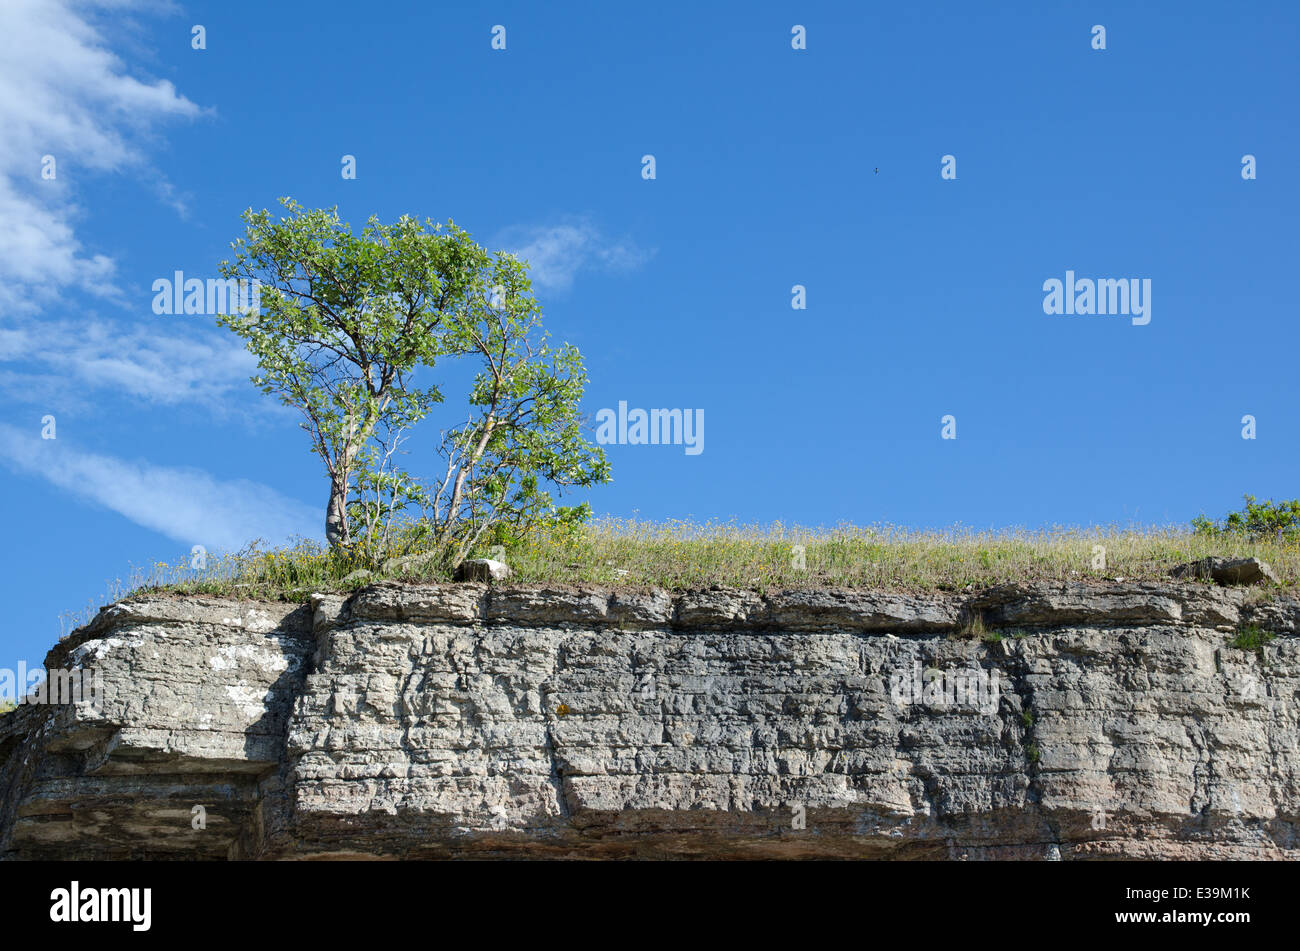 Tree at the frontline of a limestone cliff at the swedish island Oland - Stock Image